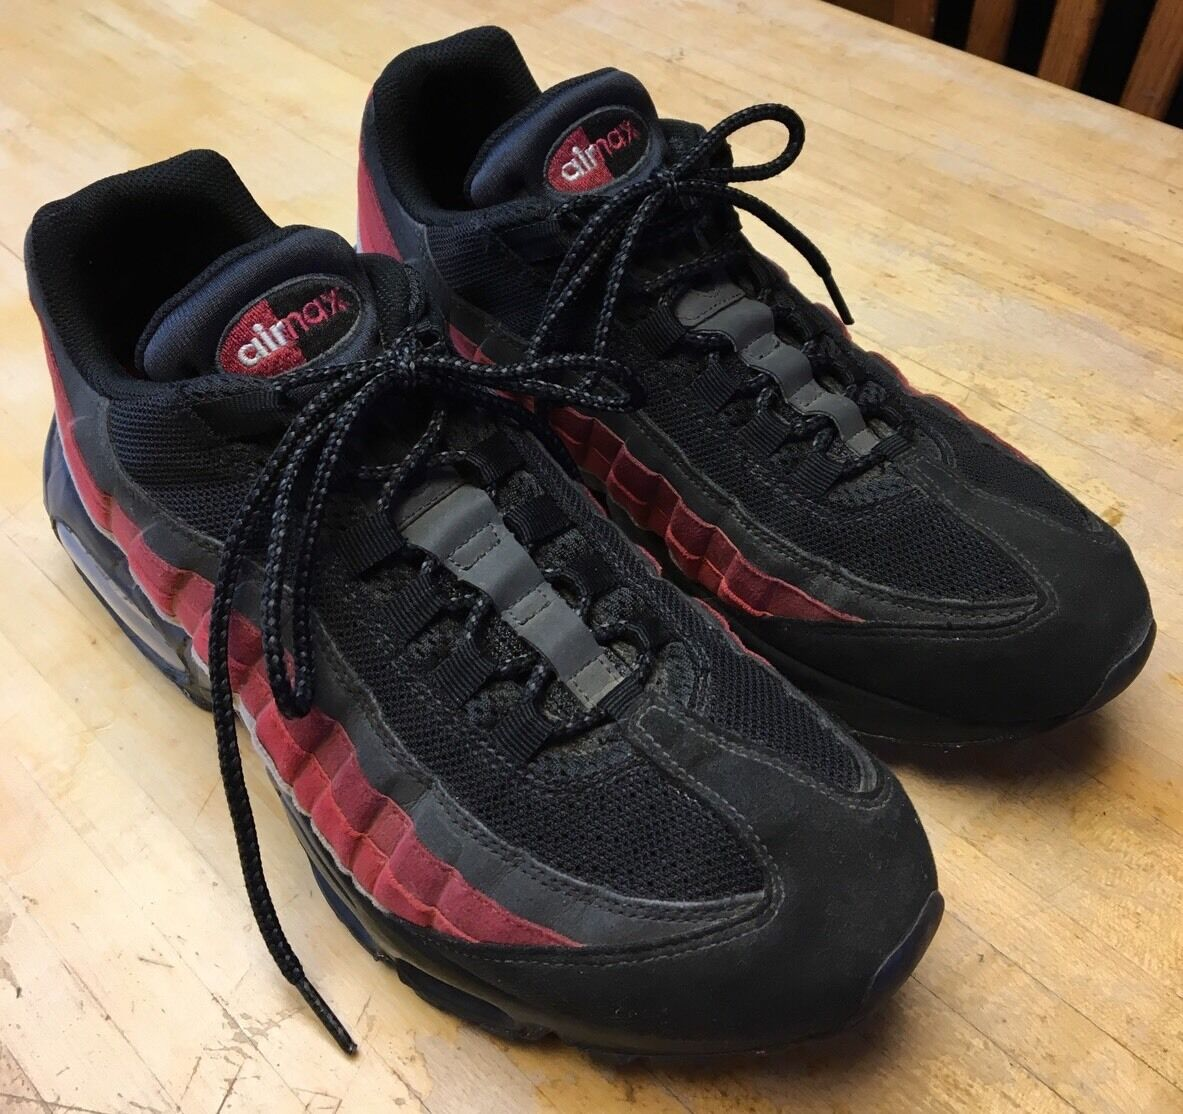 Mens Nike Air Max 95 Black/Black-Neutral Grey-Varsity Red 609048-035 Comfortable